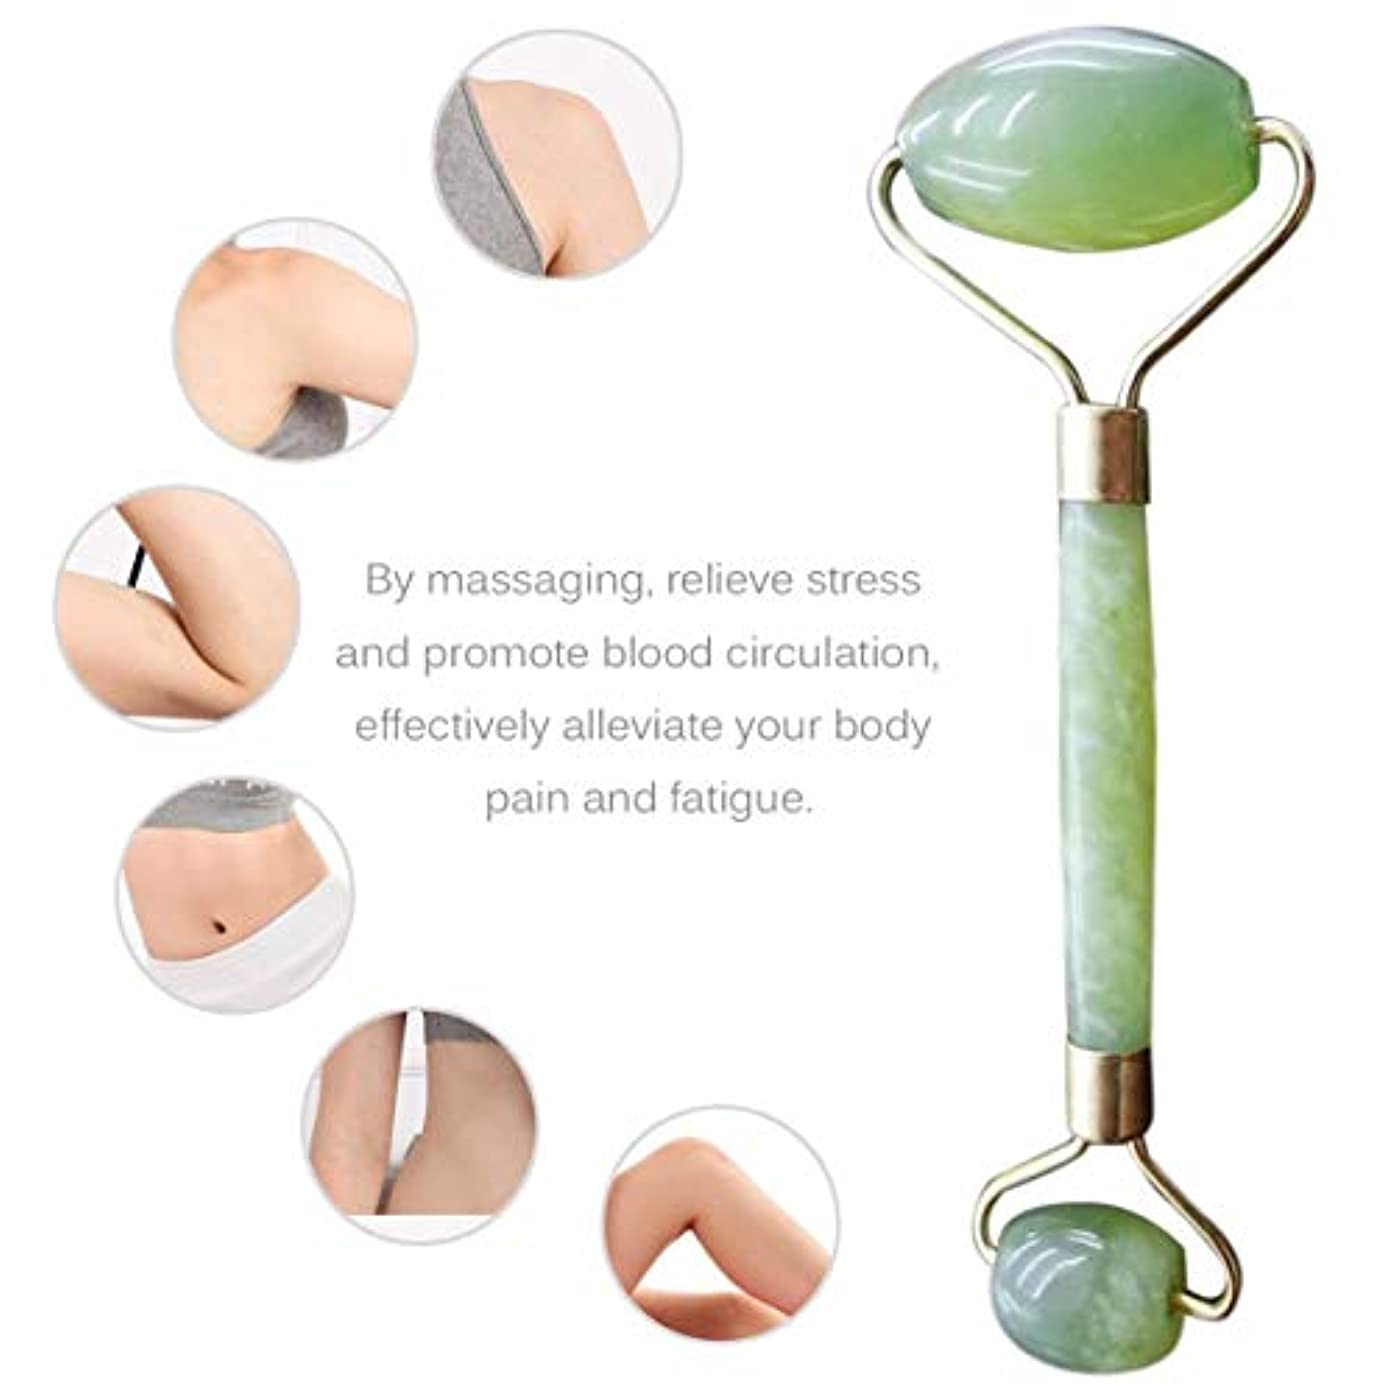 Double Heads Natural Jade Face Care Massager Handheld Anti Wrinkle Healthy Face Body Foot Massage Tools Best Gift